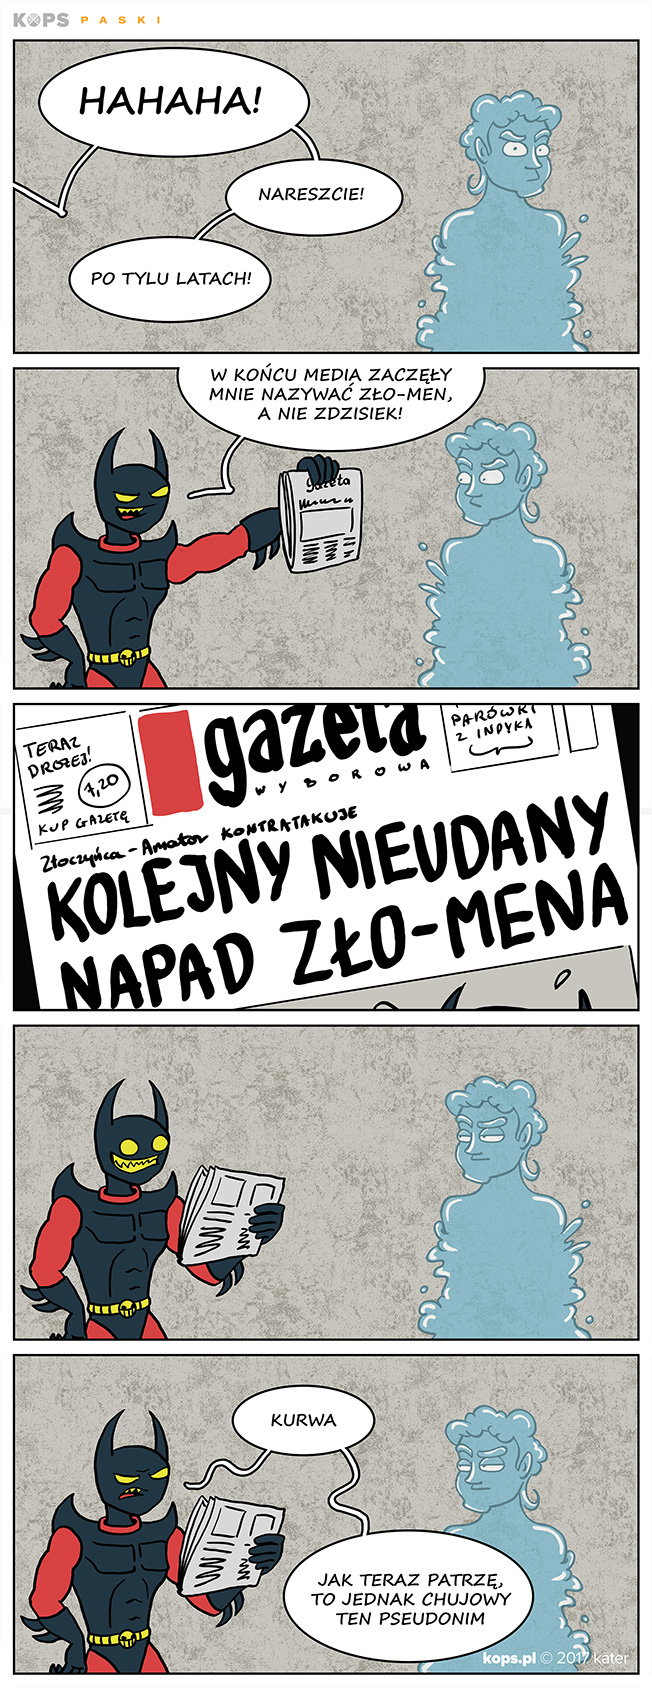 Zło-Men vs Media